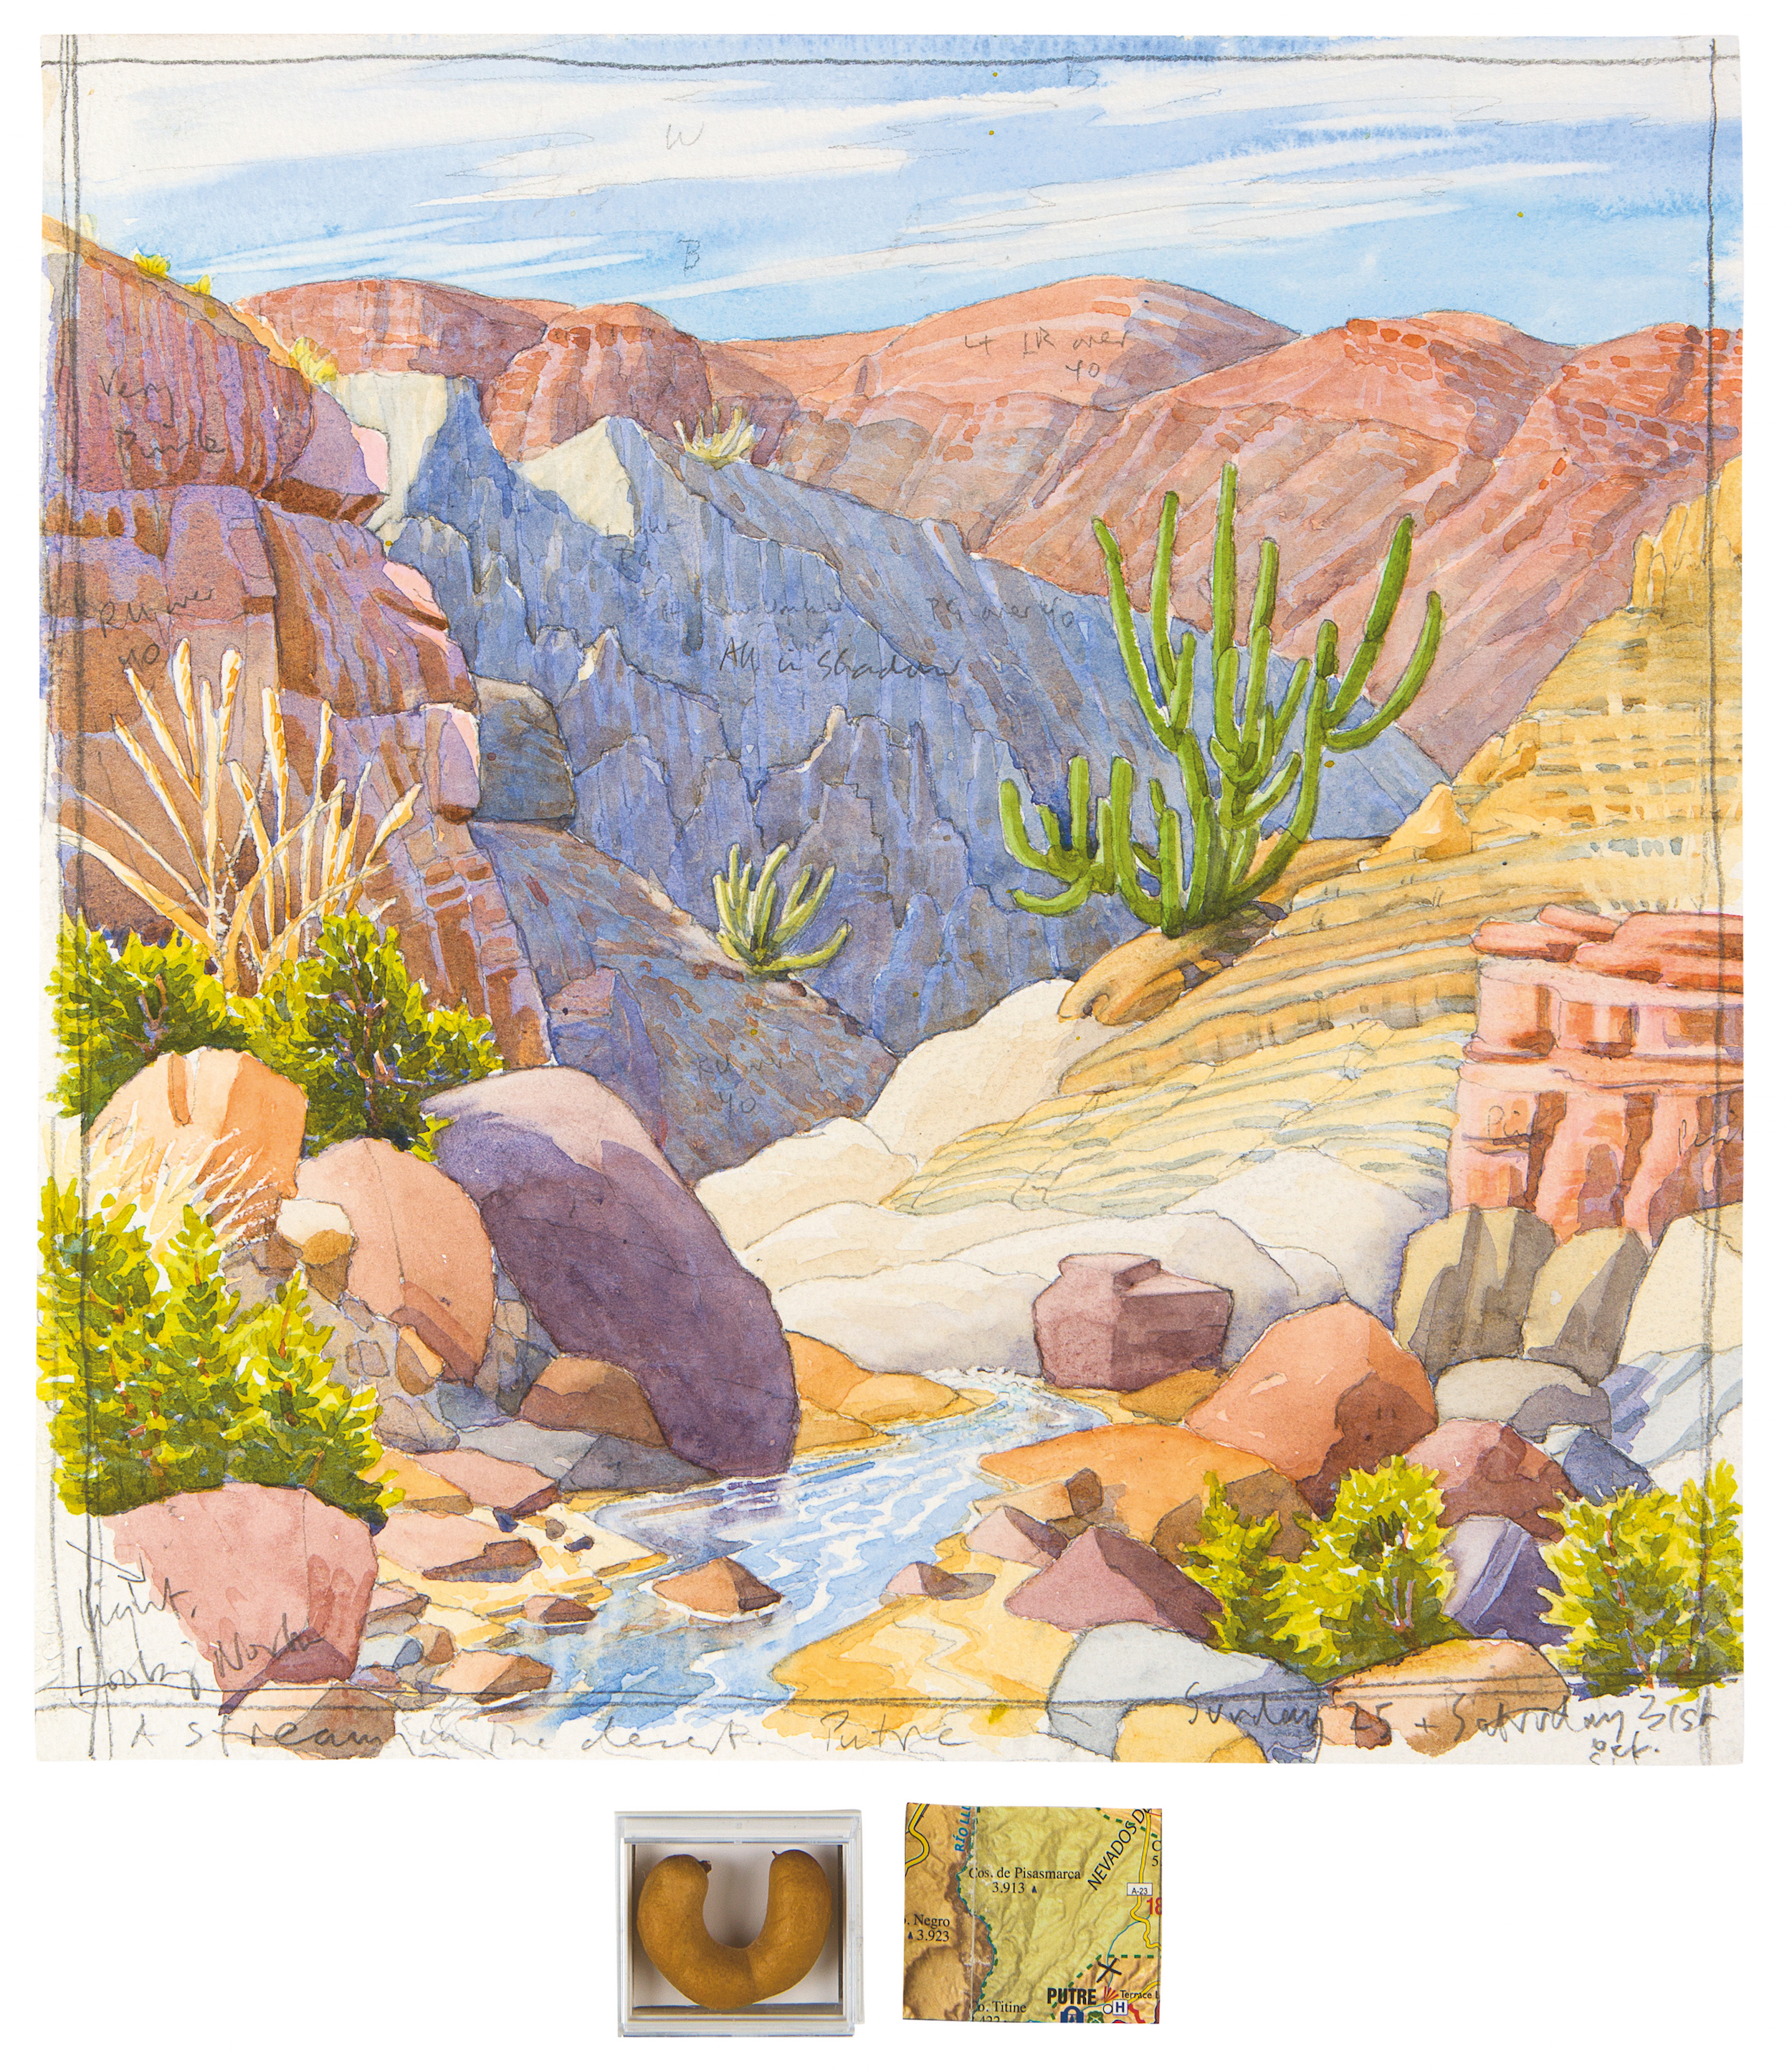 Desert clipart watercolor. The foster art wilderness